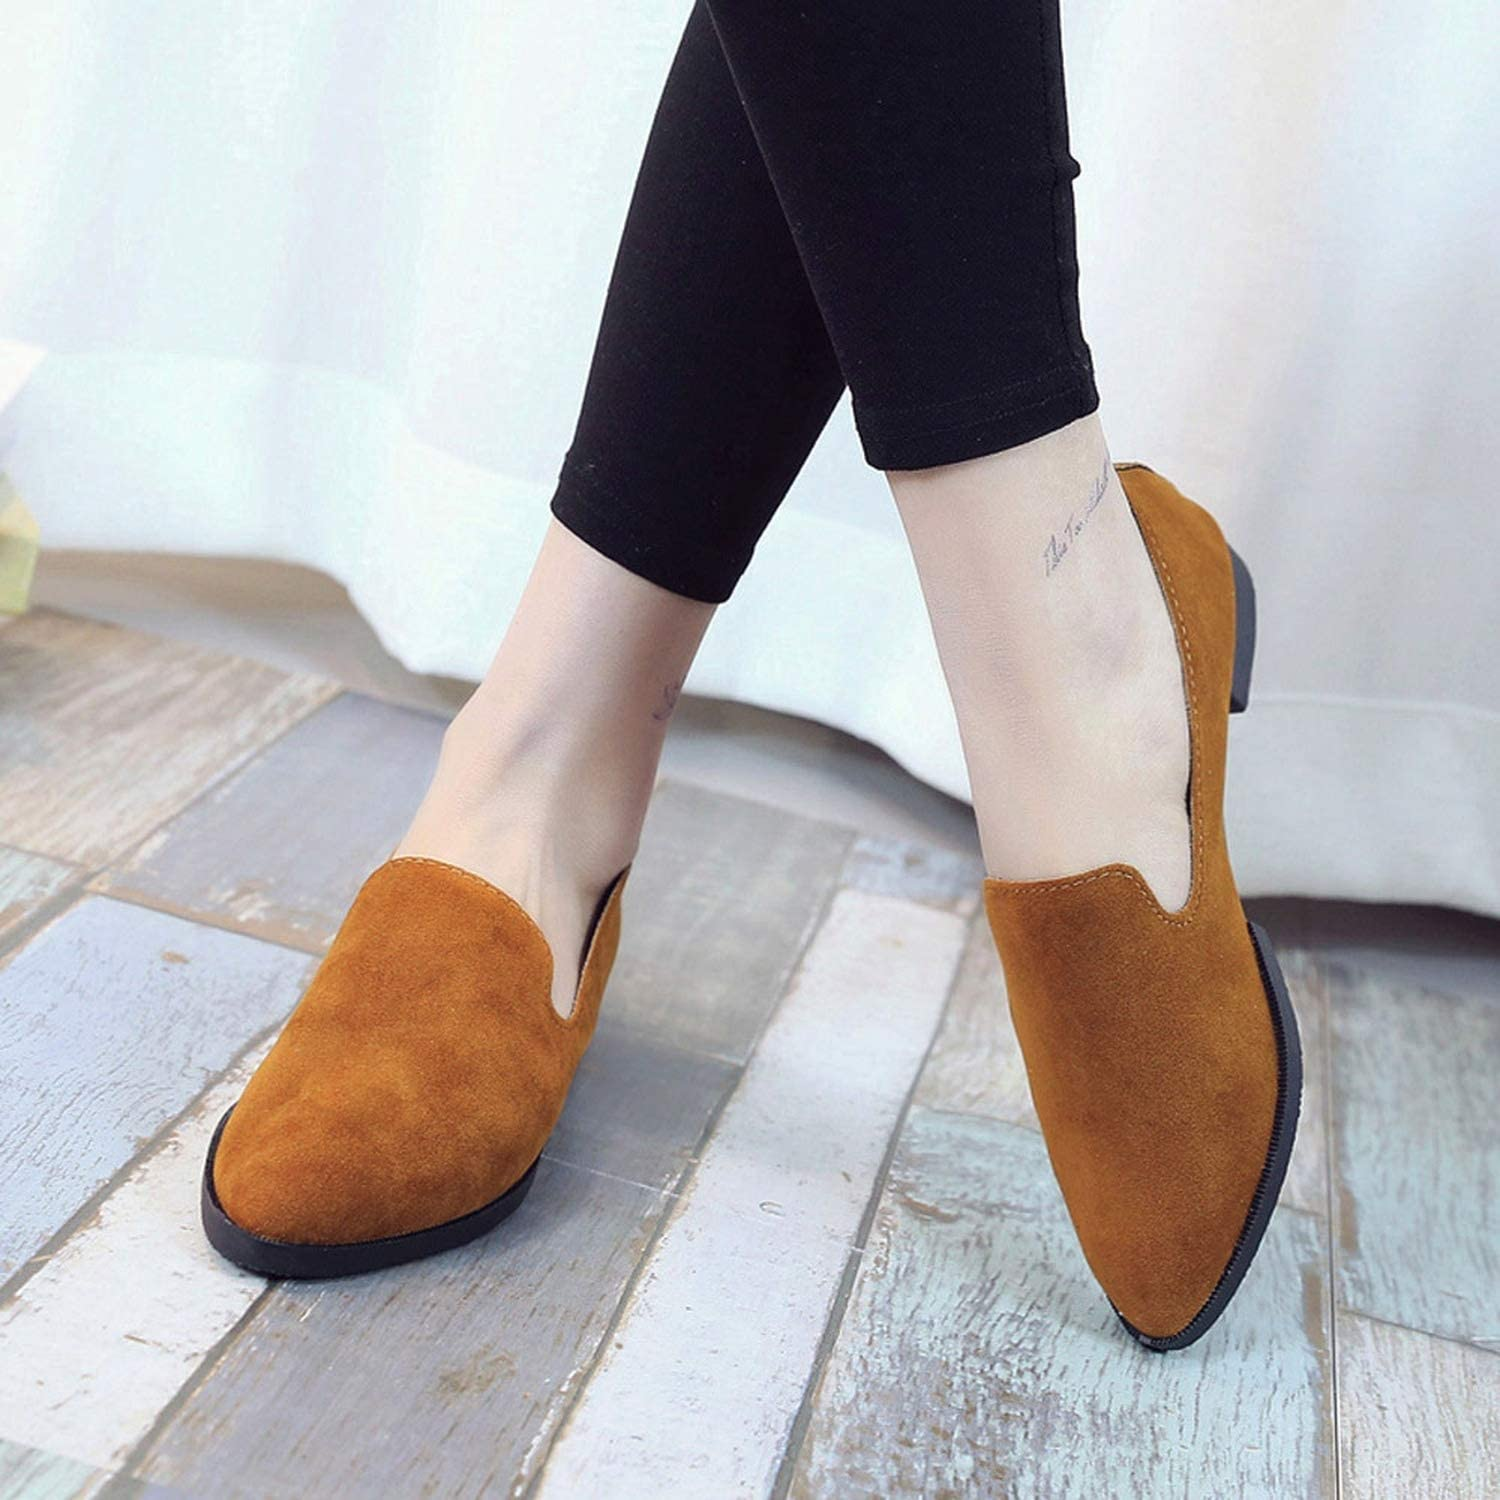 baixa Woman Loafers Spring Autumn Flat Shoes Female Matte Face Pointed Solid Color Flat Shoes Fashion Casual Shallow Shoes No6,BW,6.5